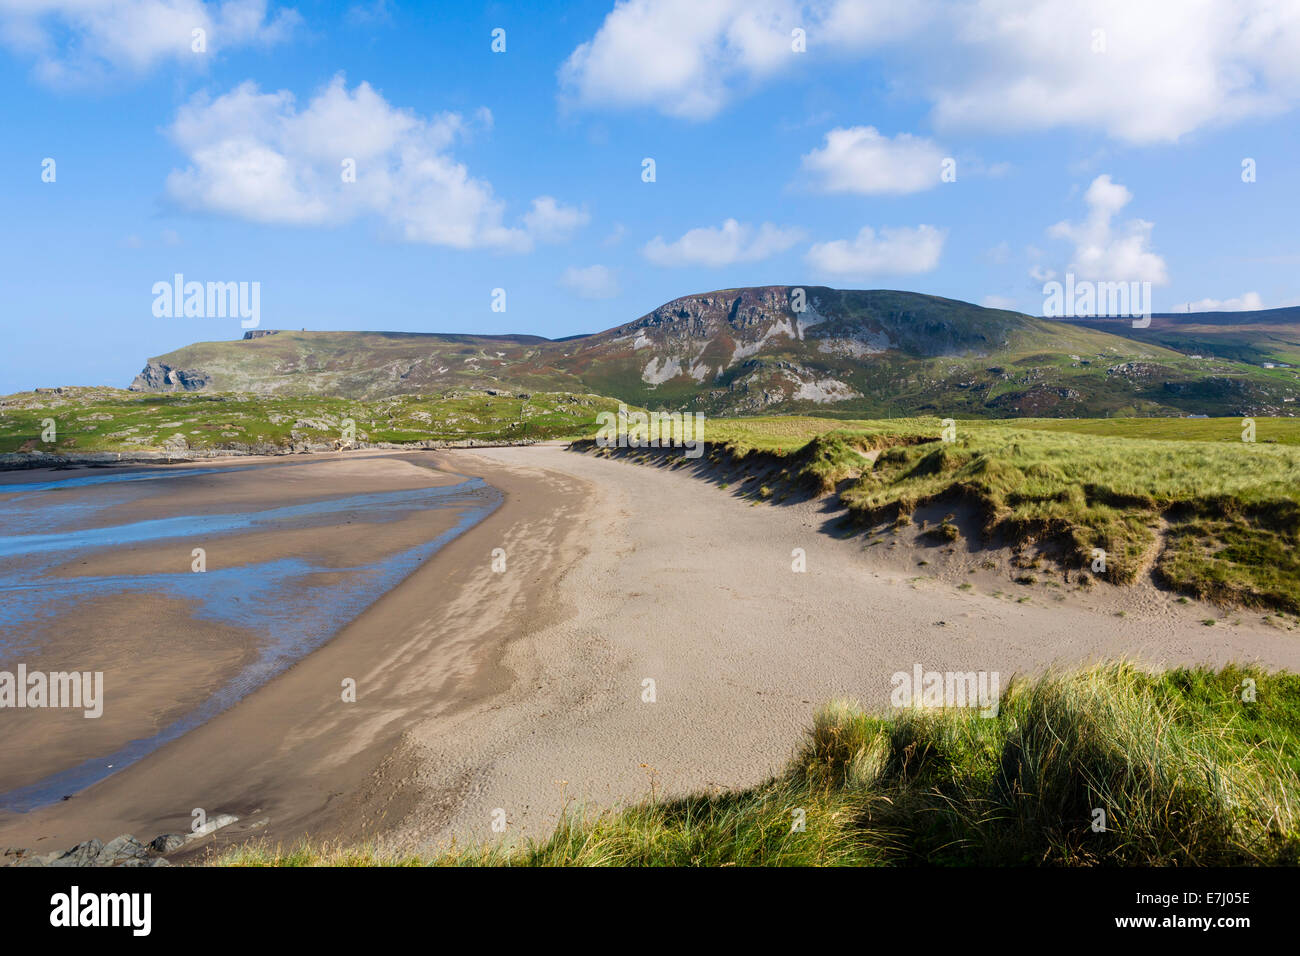 Beach at Doonalt, Glencolumbkille (or Glencolmcille), County Donegal, Republic of Ireland - Stock Image